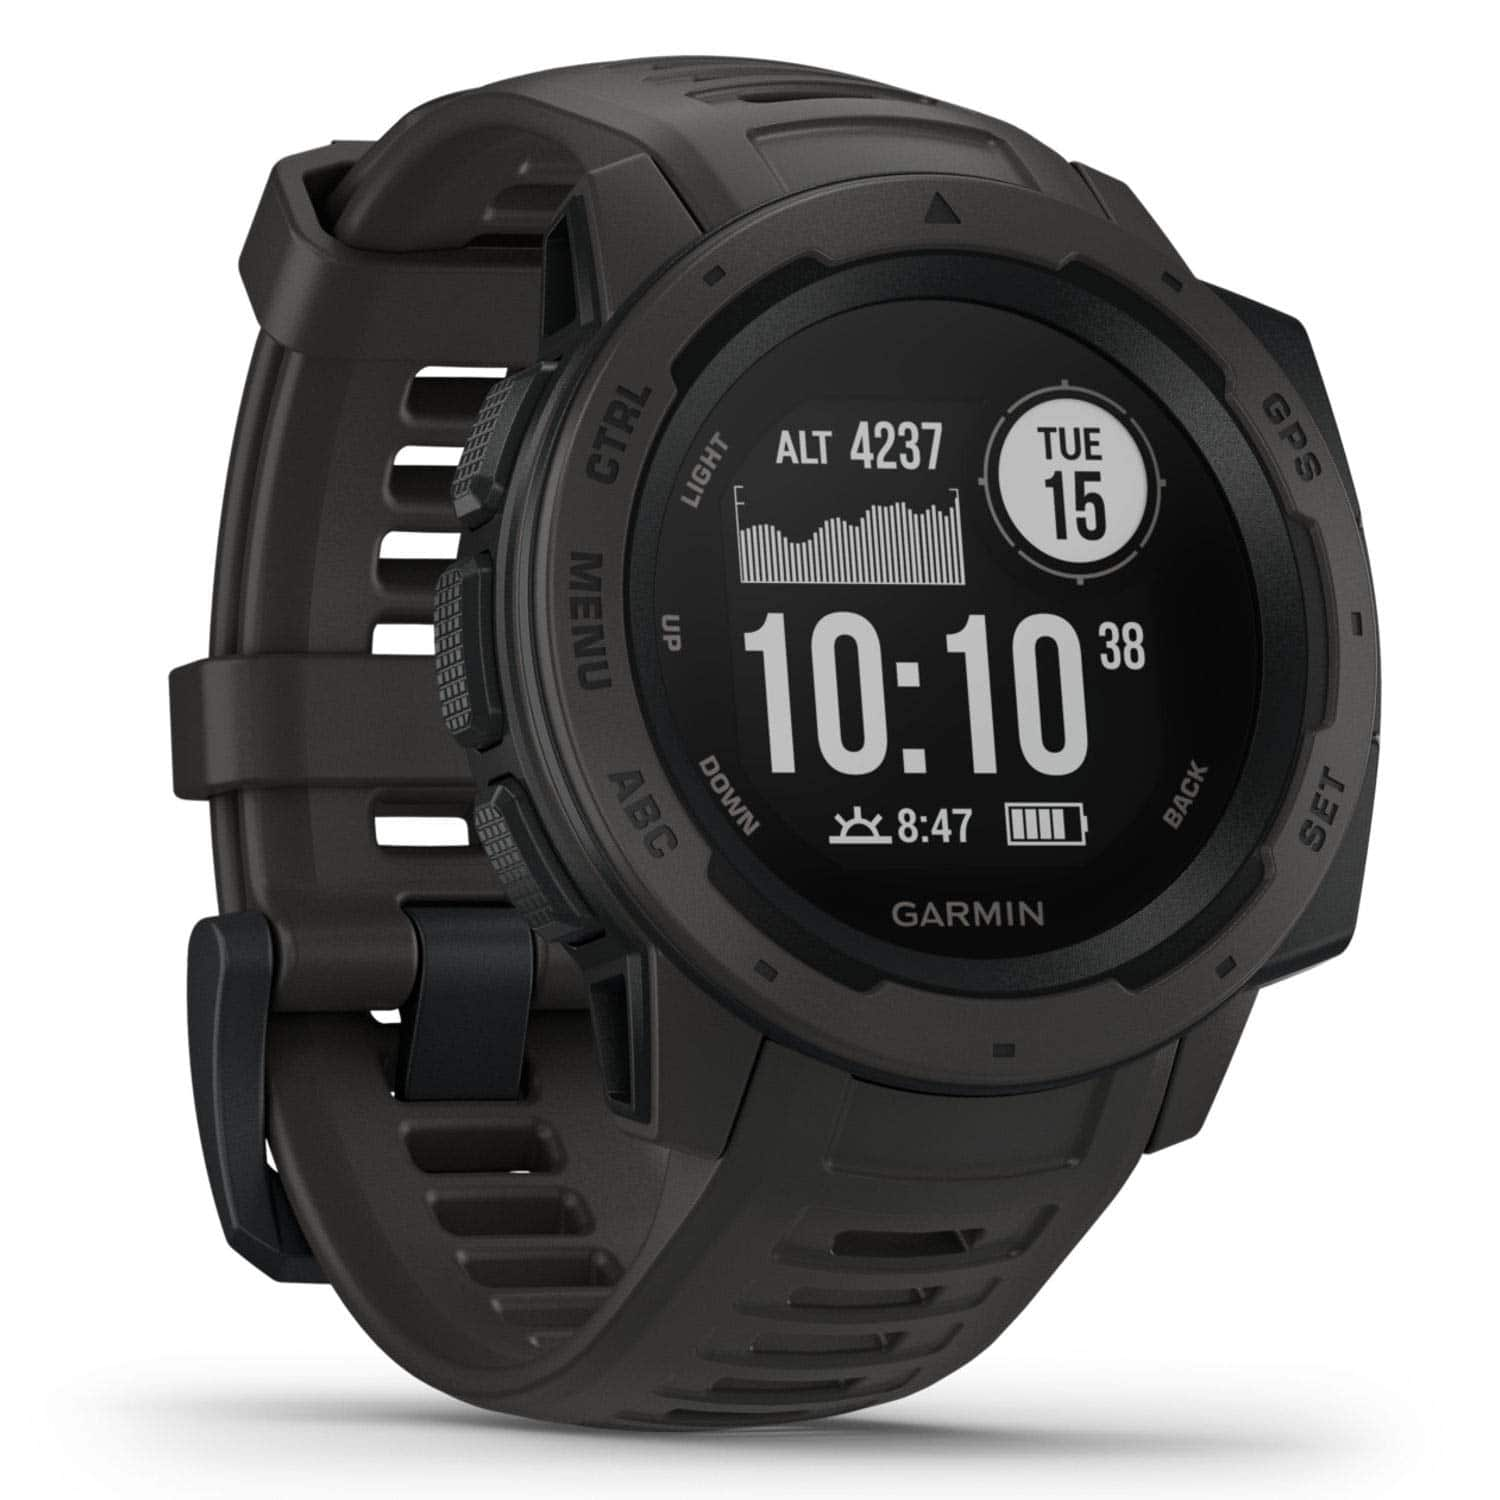 Garmin Instinct GPS Watch (various colors) , $199.99 @REI & Amazon with free shipping